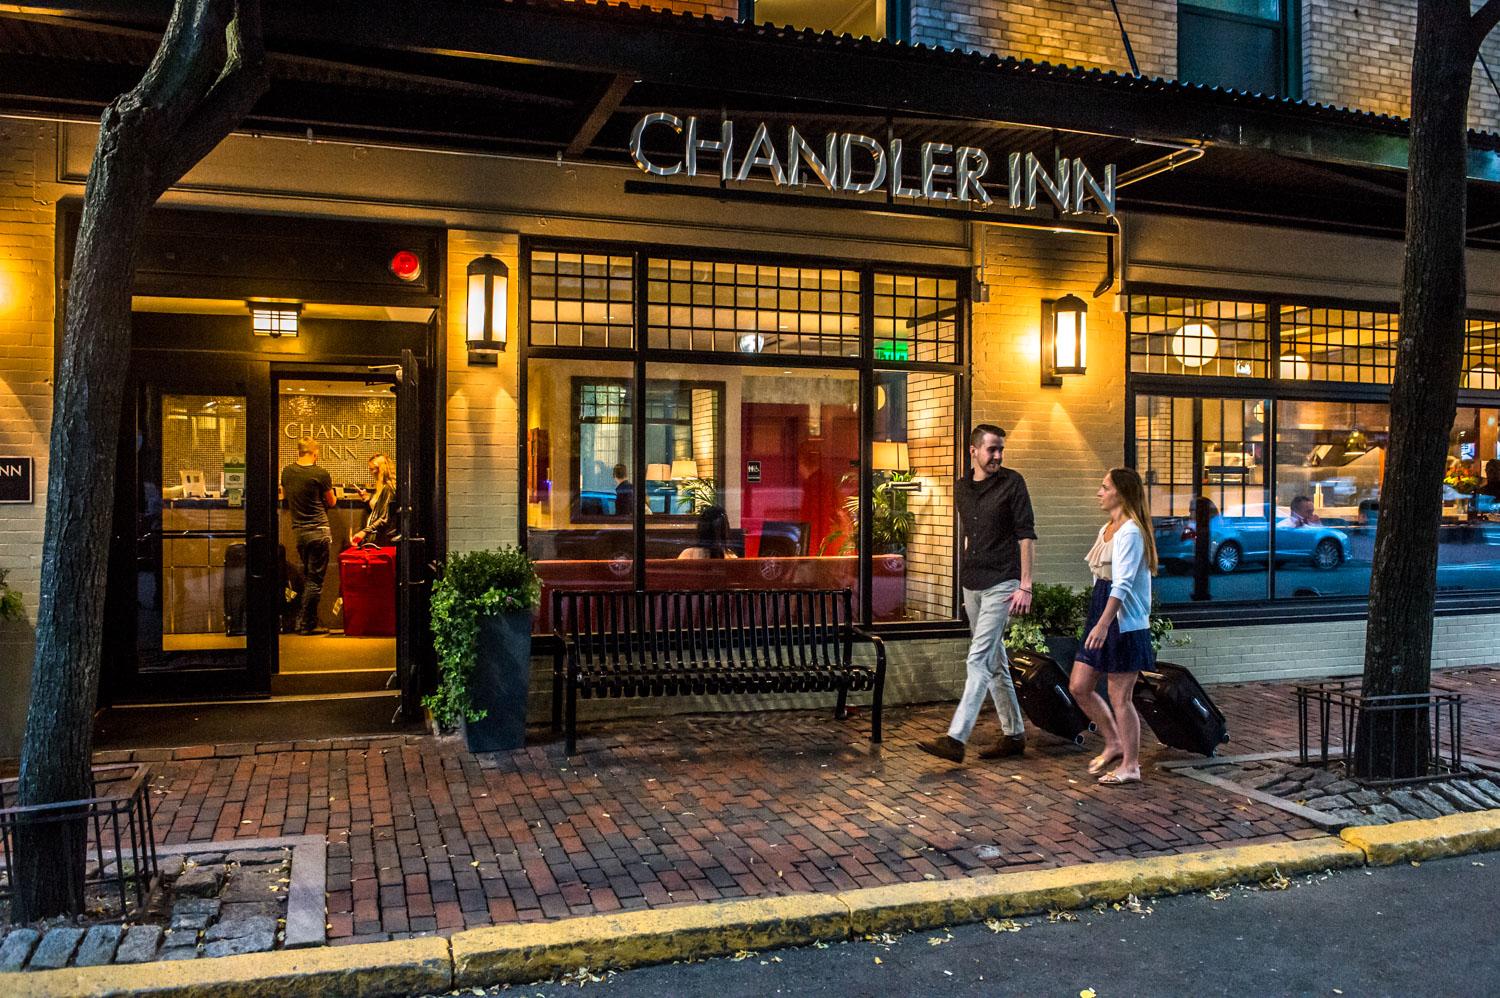 017-564_140811_Chandler_Inn.jpg